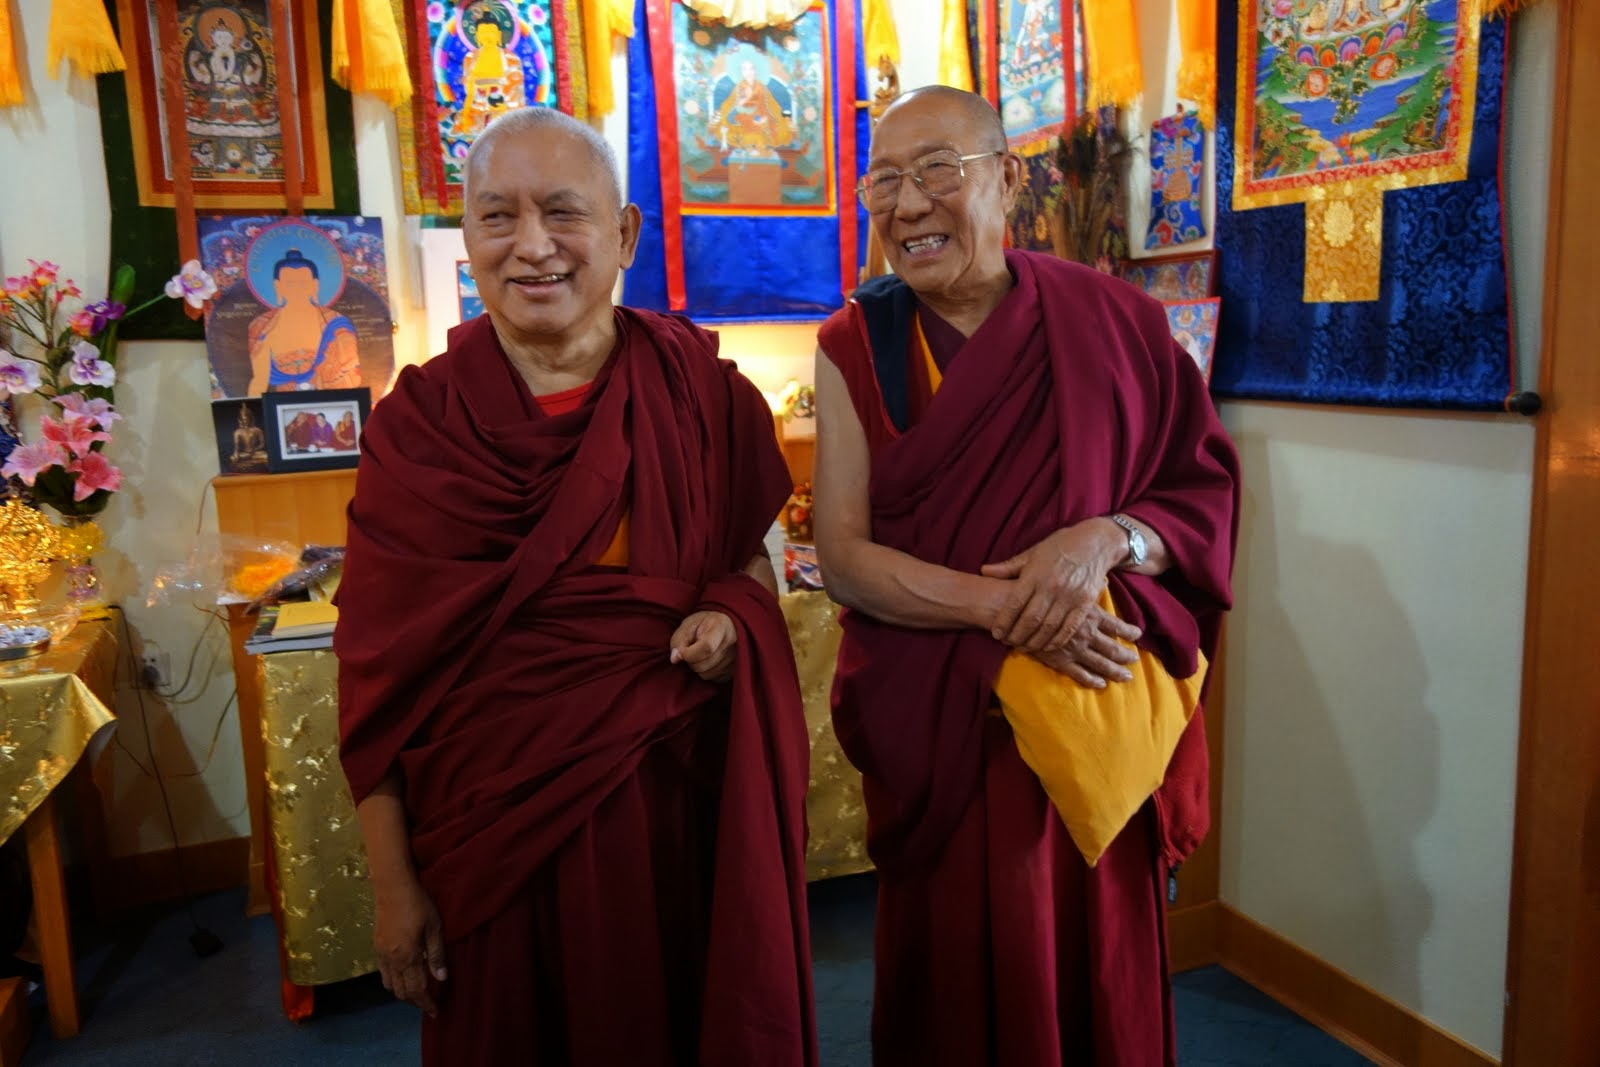 Panchen Otrul Rinpoche and Lama Zopa Rinpoche meeting for a relaxed lunch together at Shedrup Ling Ulaan Bataar. Panchen Otrul has been coming to Mongolia to teach and help with social work, especially for the poor, since 1995. Rinpoche is based in Ireland.Sep 9, 2013. Photo by Ven. Roger Kunsang.